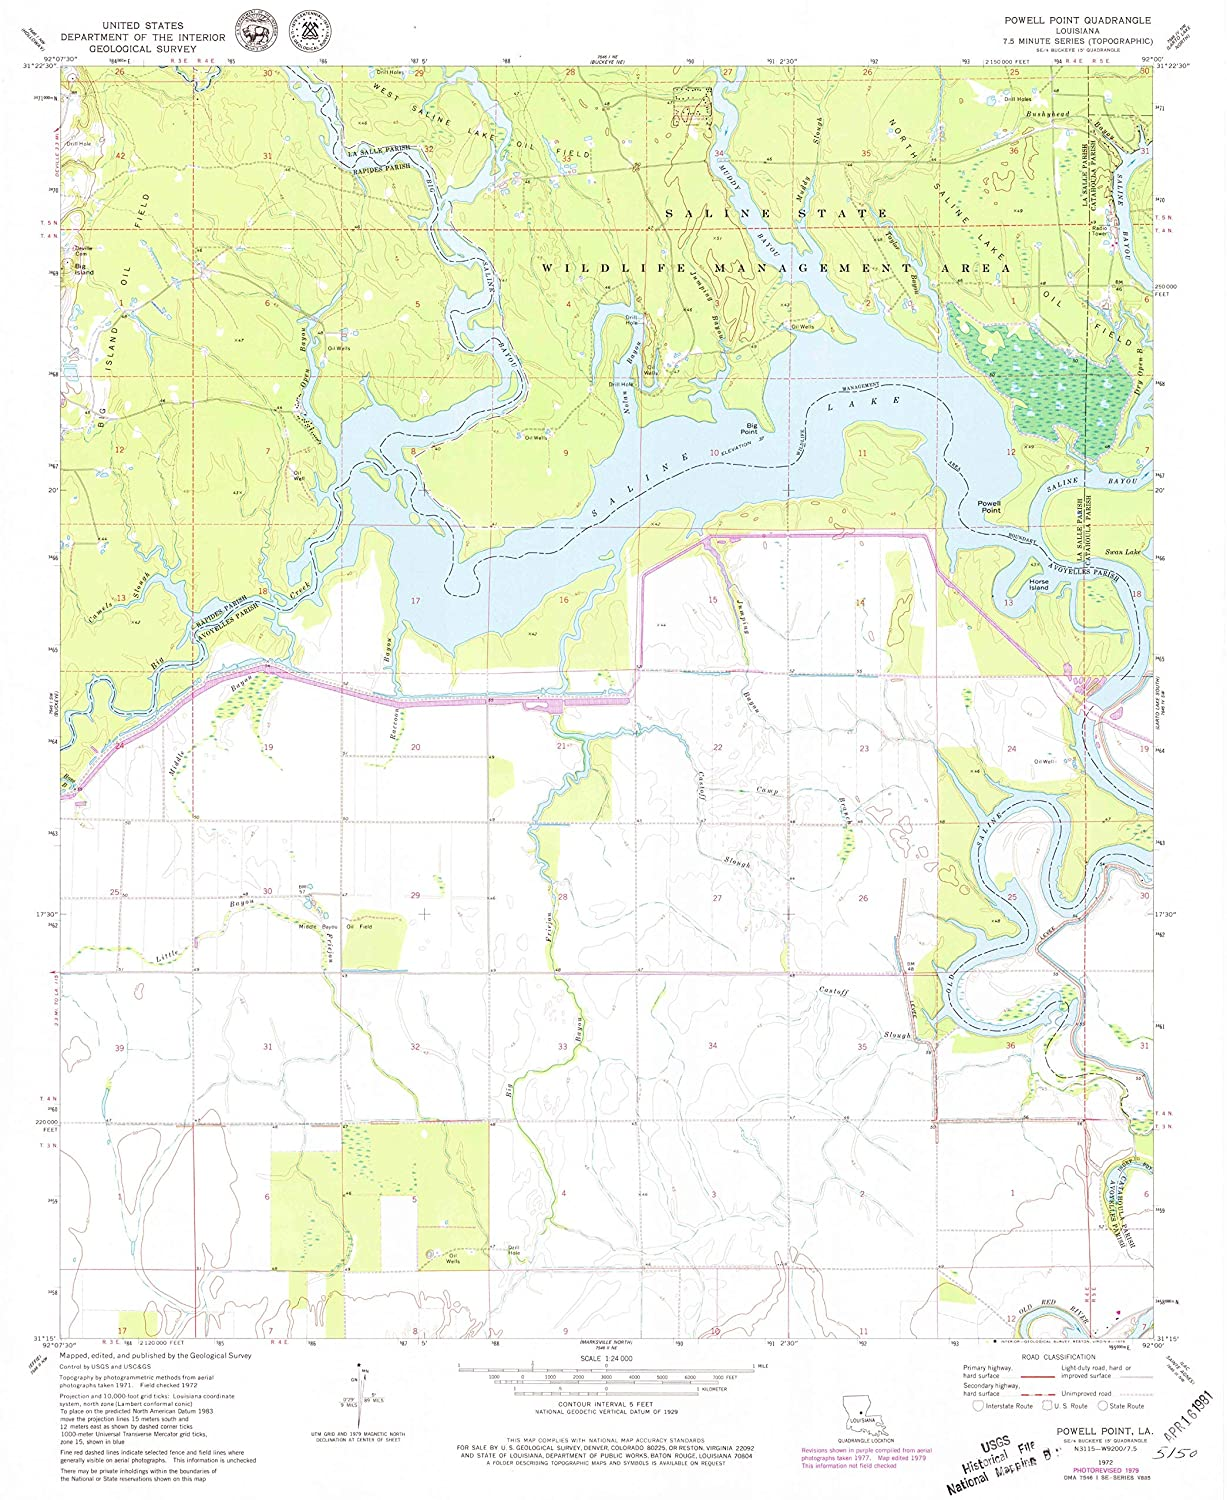 Map Print - Powell Point, Louisiana (1972), 1:24000 Scale - 24